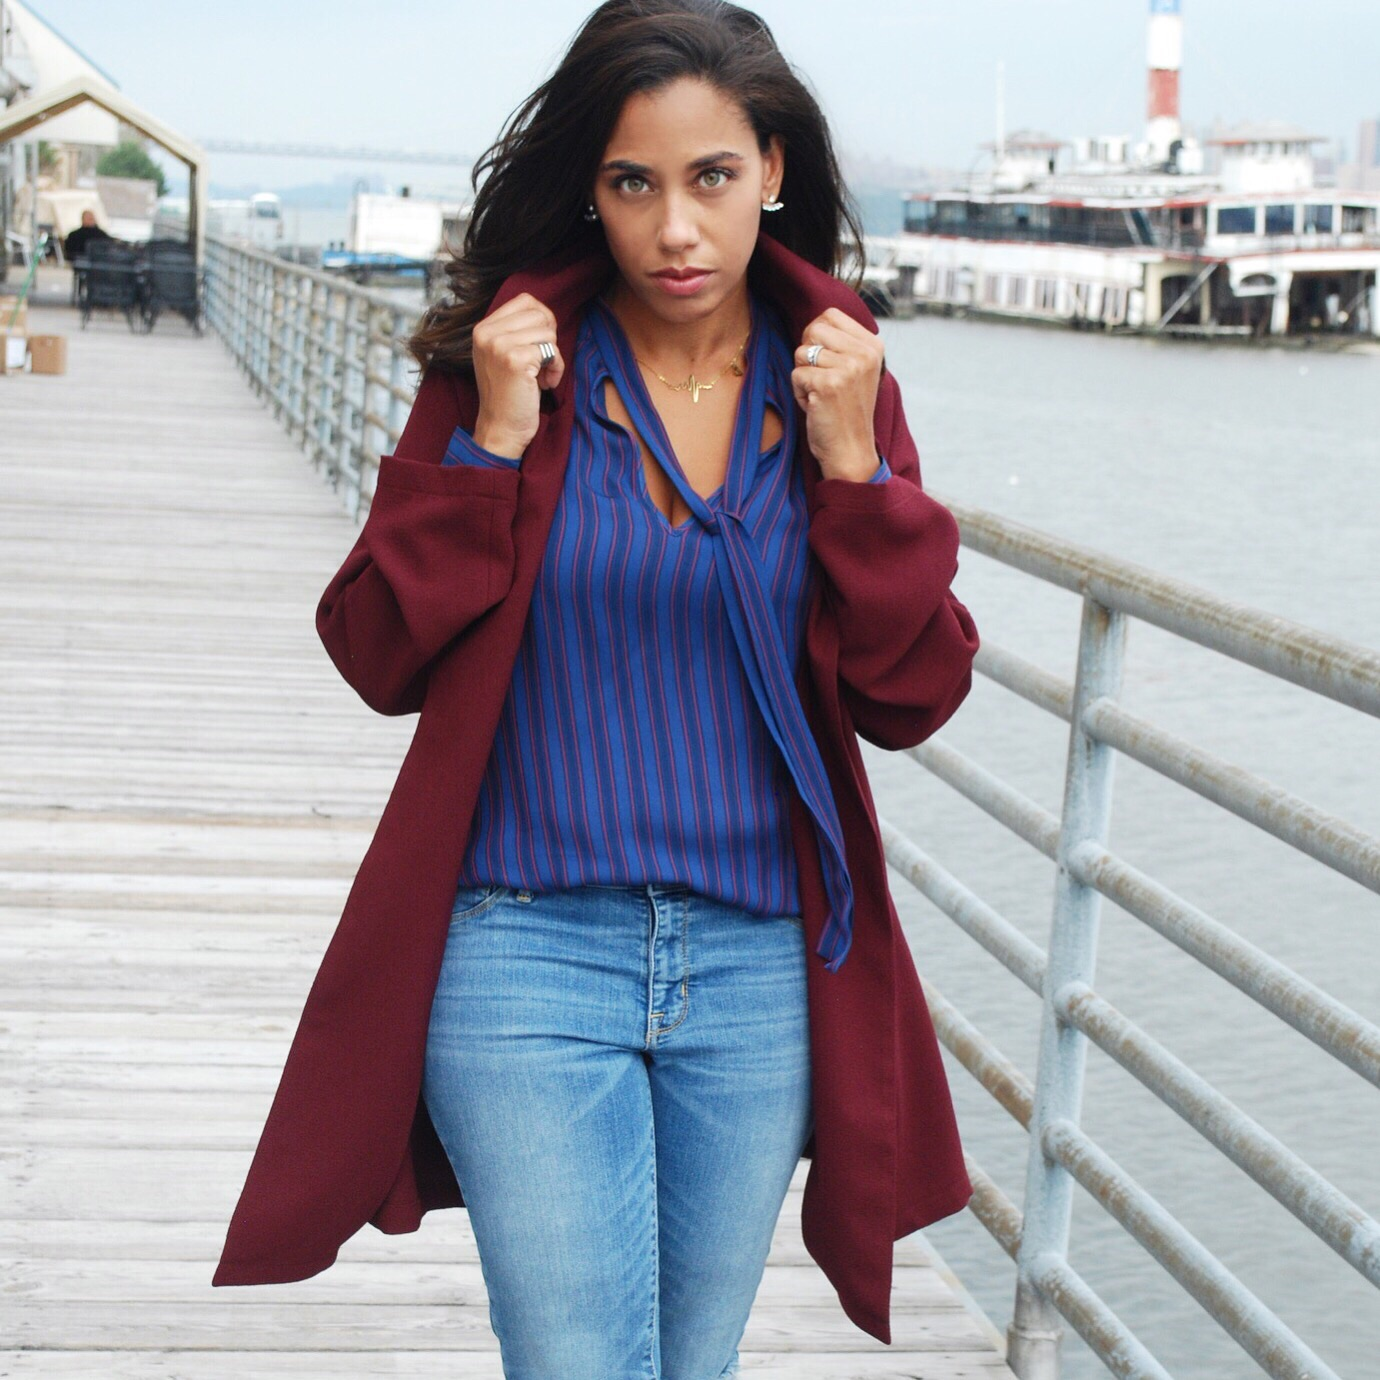 Burgundy and Blue outfit